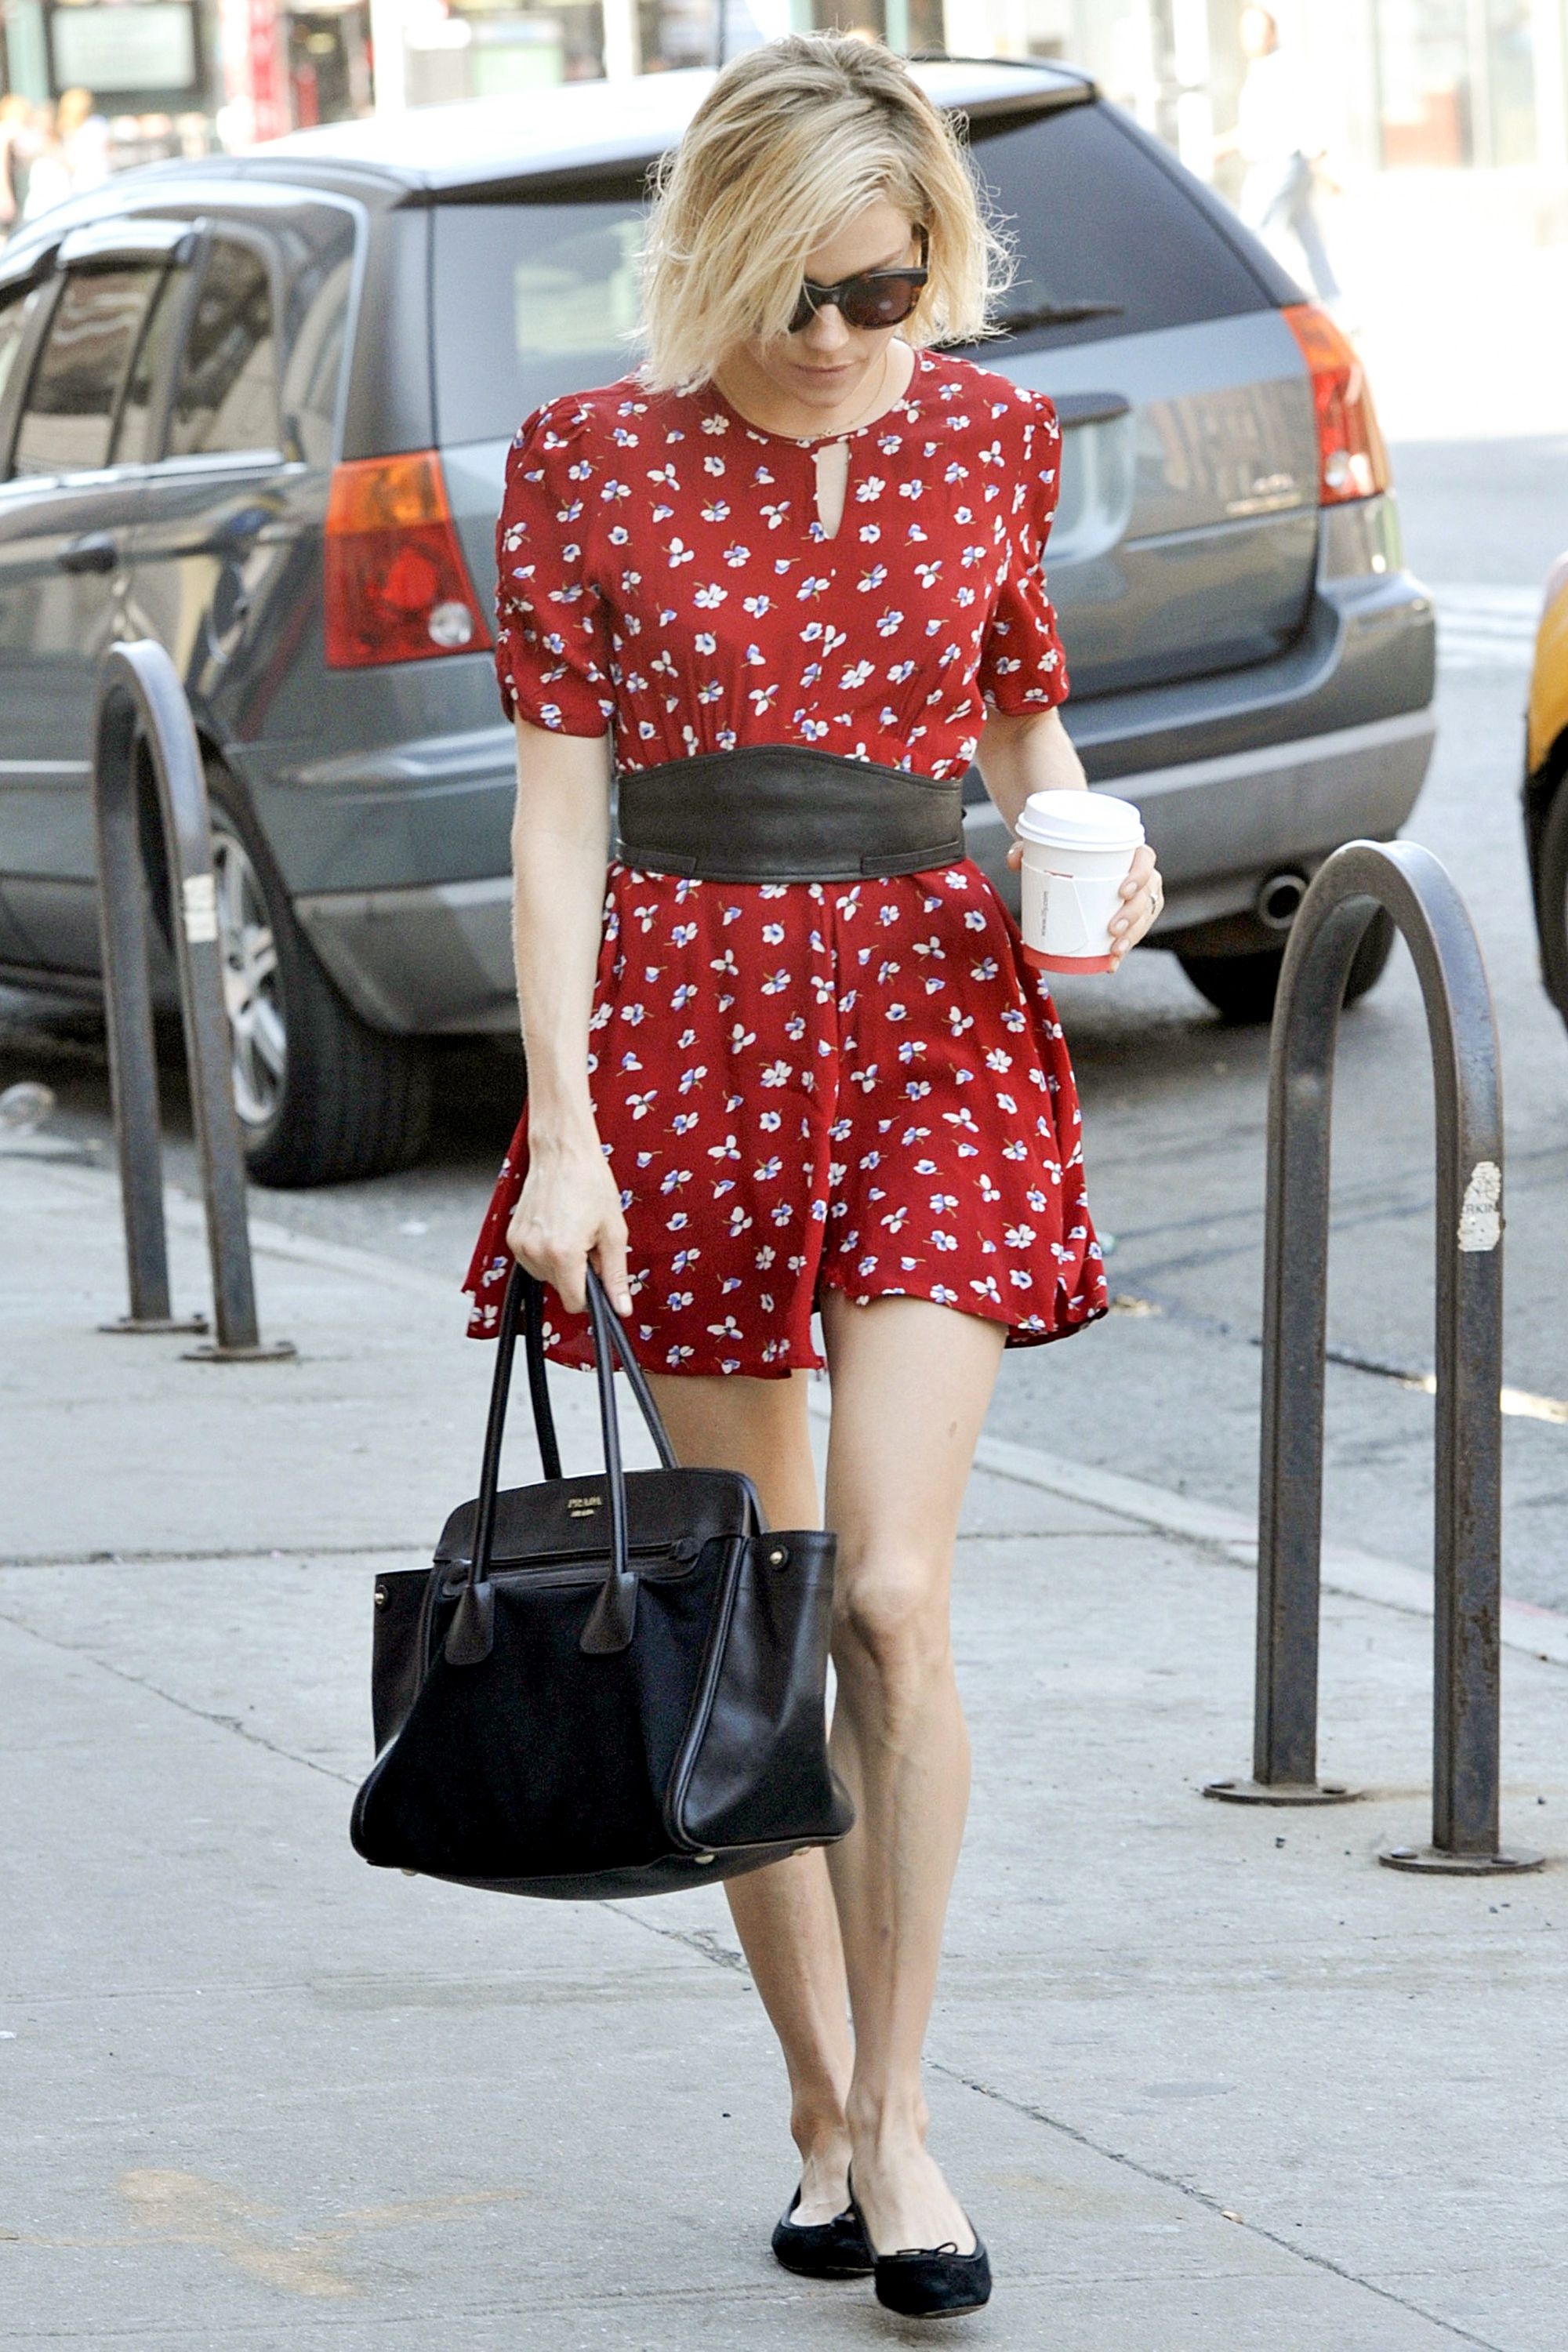 ***MANDATORY BYLINE TO READ INFPhoto.com ONLY***<BR/>Actress Sienna Miller wears a red floral print dress, which appears to have a ripped hem, as she walks in the West Village section of New York City.<P>Pictured: Sienna Miller<B>Ref: SPL1016602  040515  </B><BR/>Picture by: ACE/INFphoto.com<BR/></P><P>